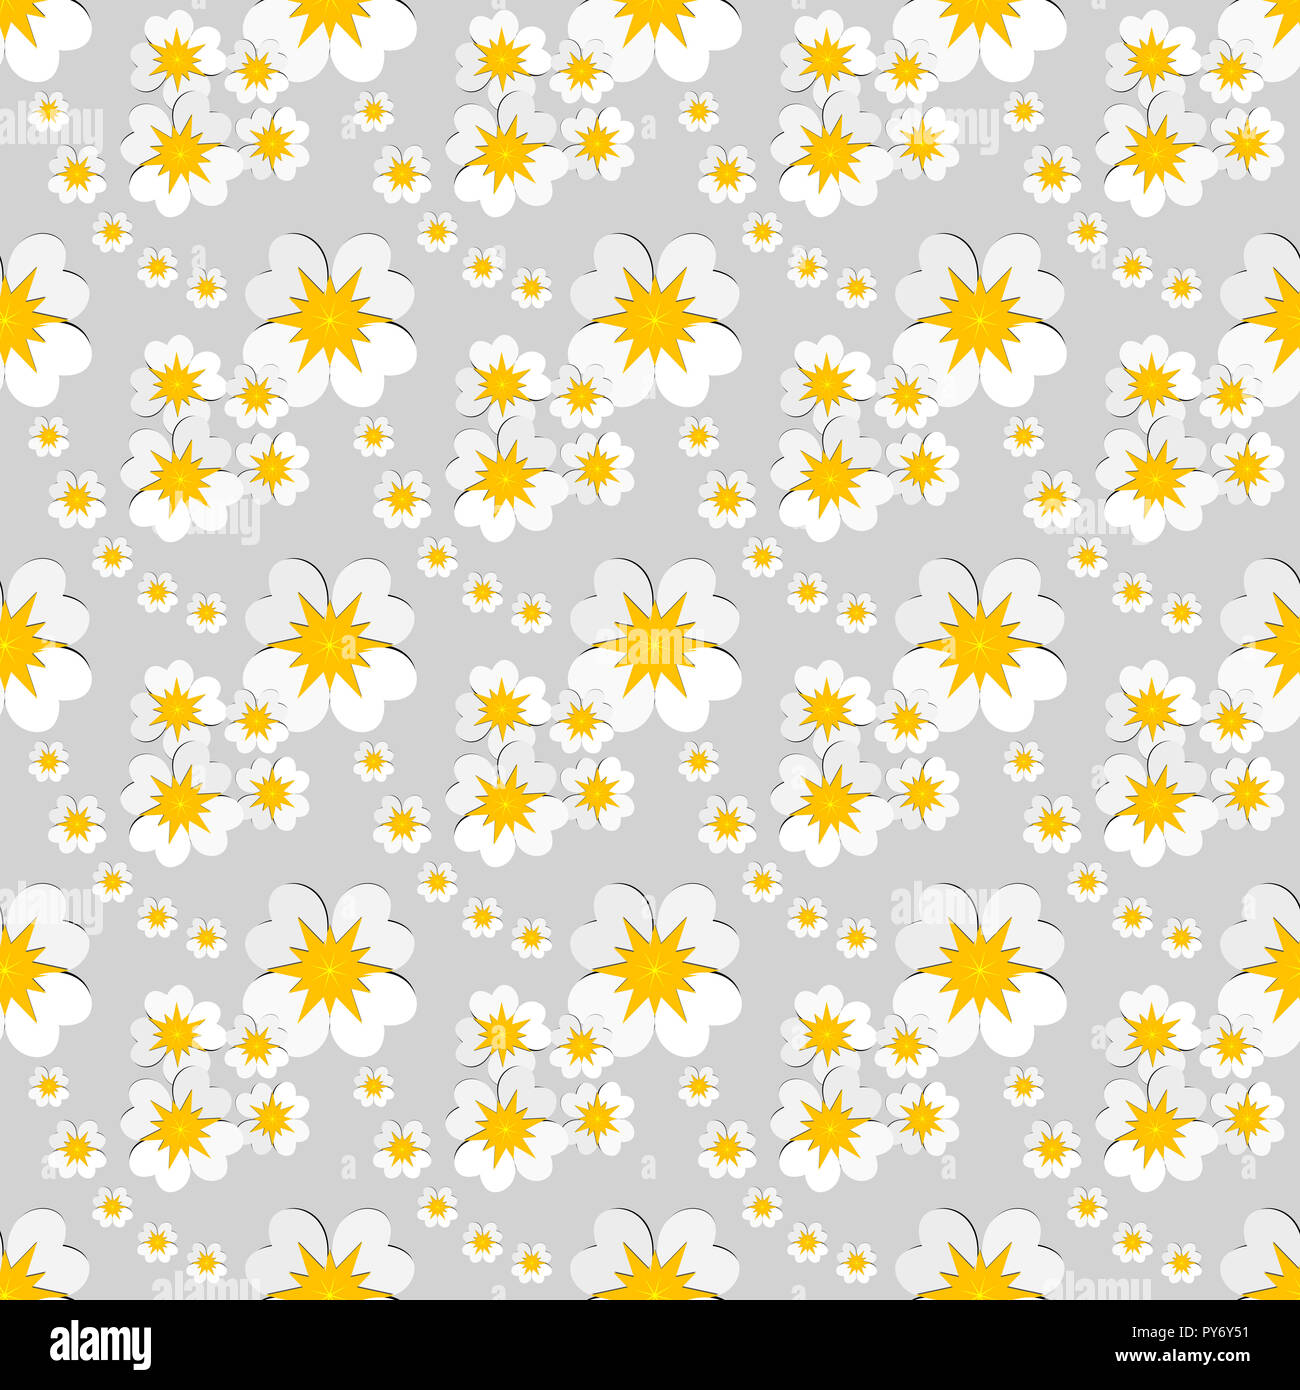 Seamless Floral Pattern Of White Flowers With Yellow Pollen